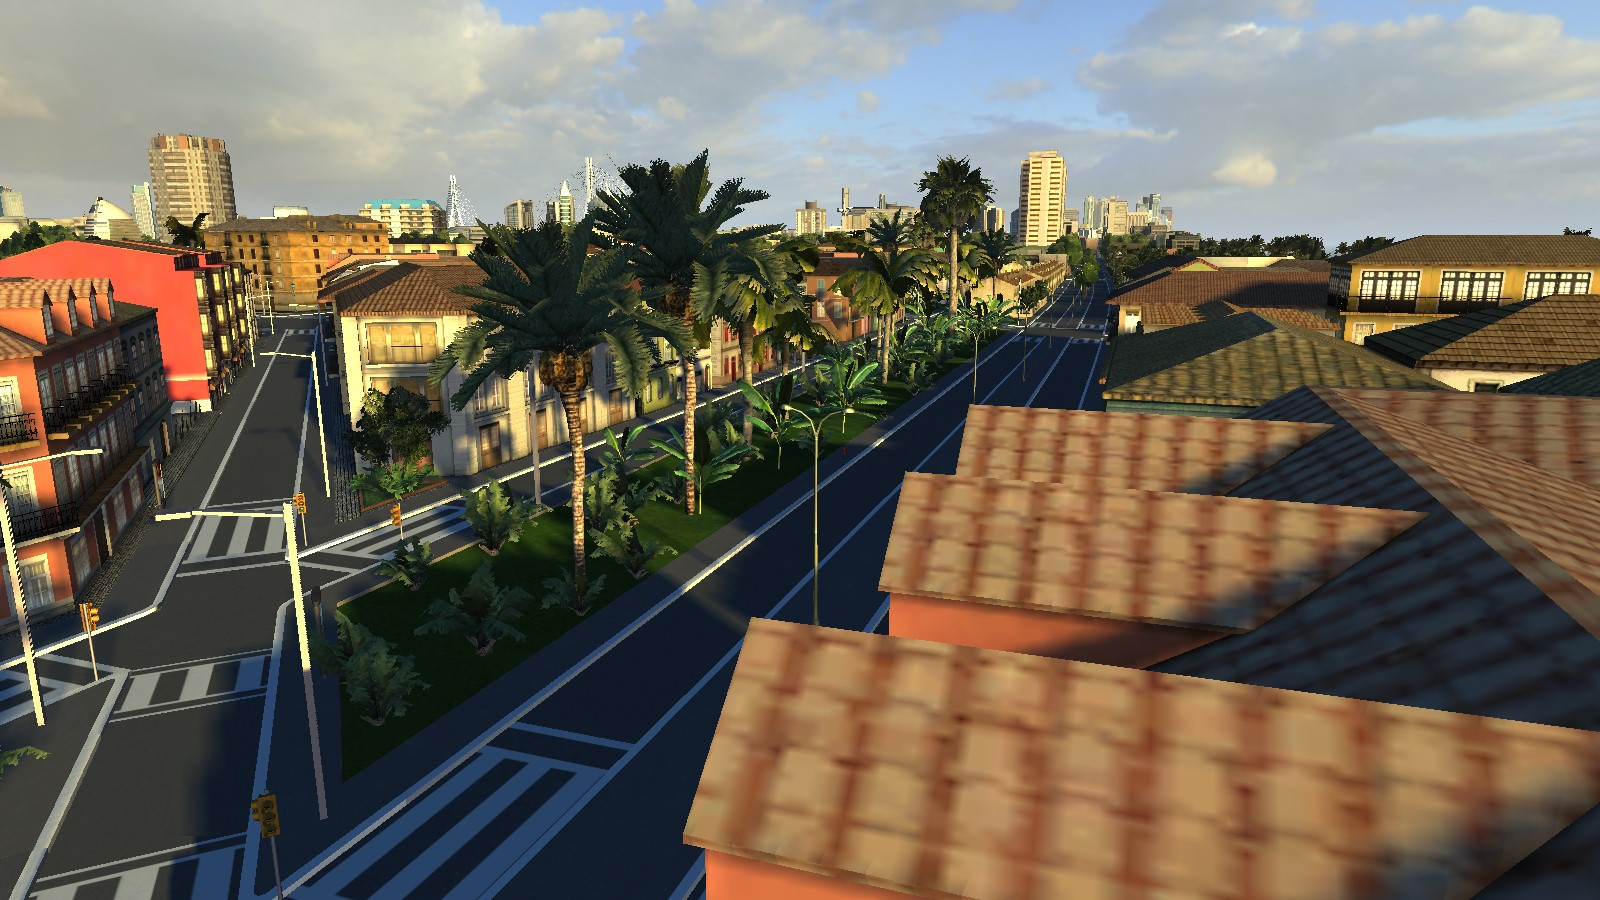 cxl_screenshot_palmas_19.jpg